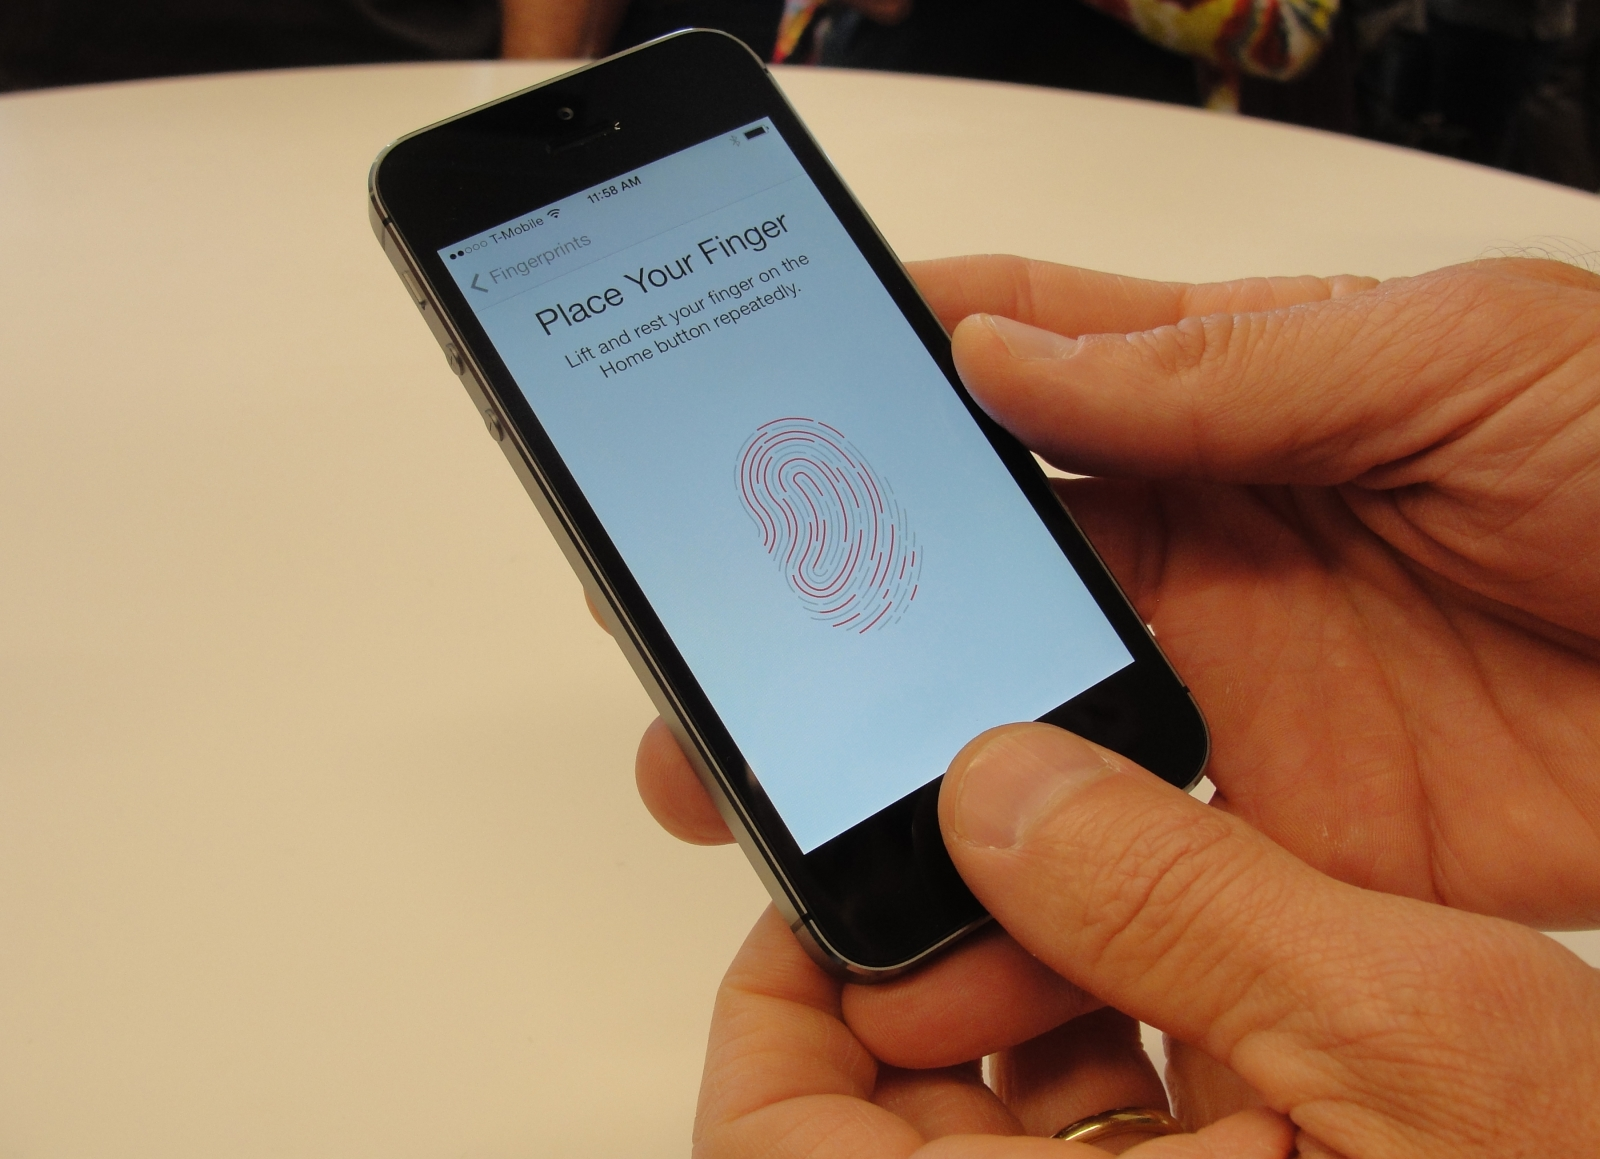 Feds requested right to demand anyone's fingerprints to open phones, court documents reveal